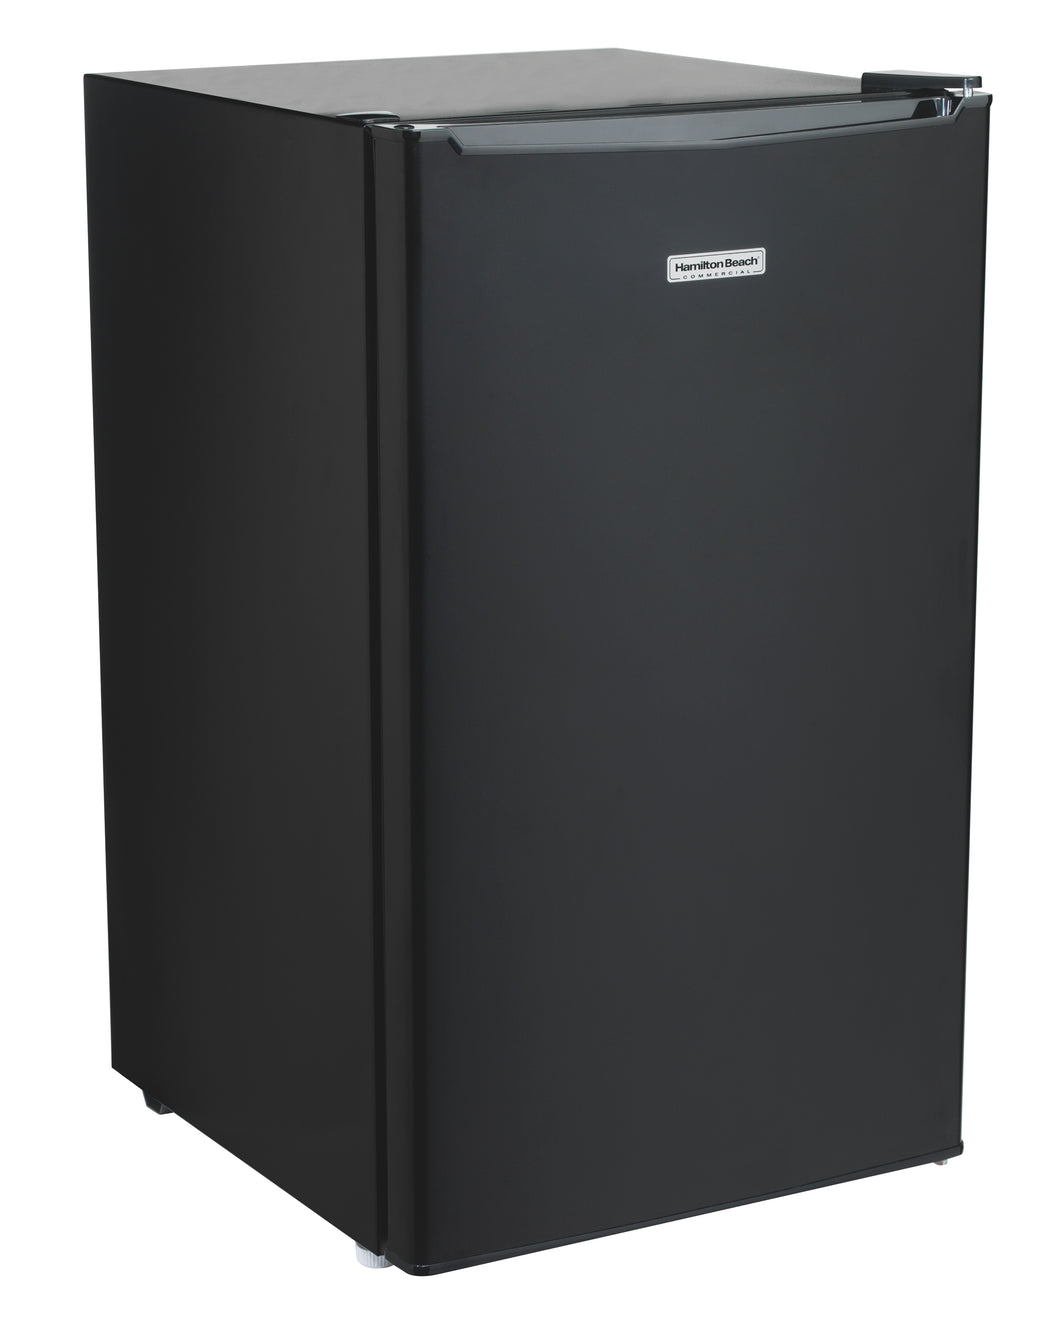 Compact Refrigerator - <br> 3.5 Cubic Foot Capacity